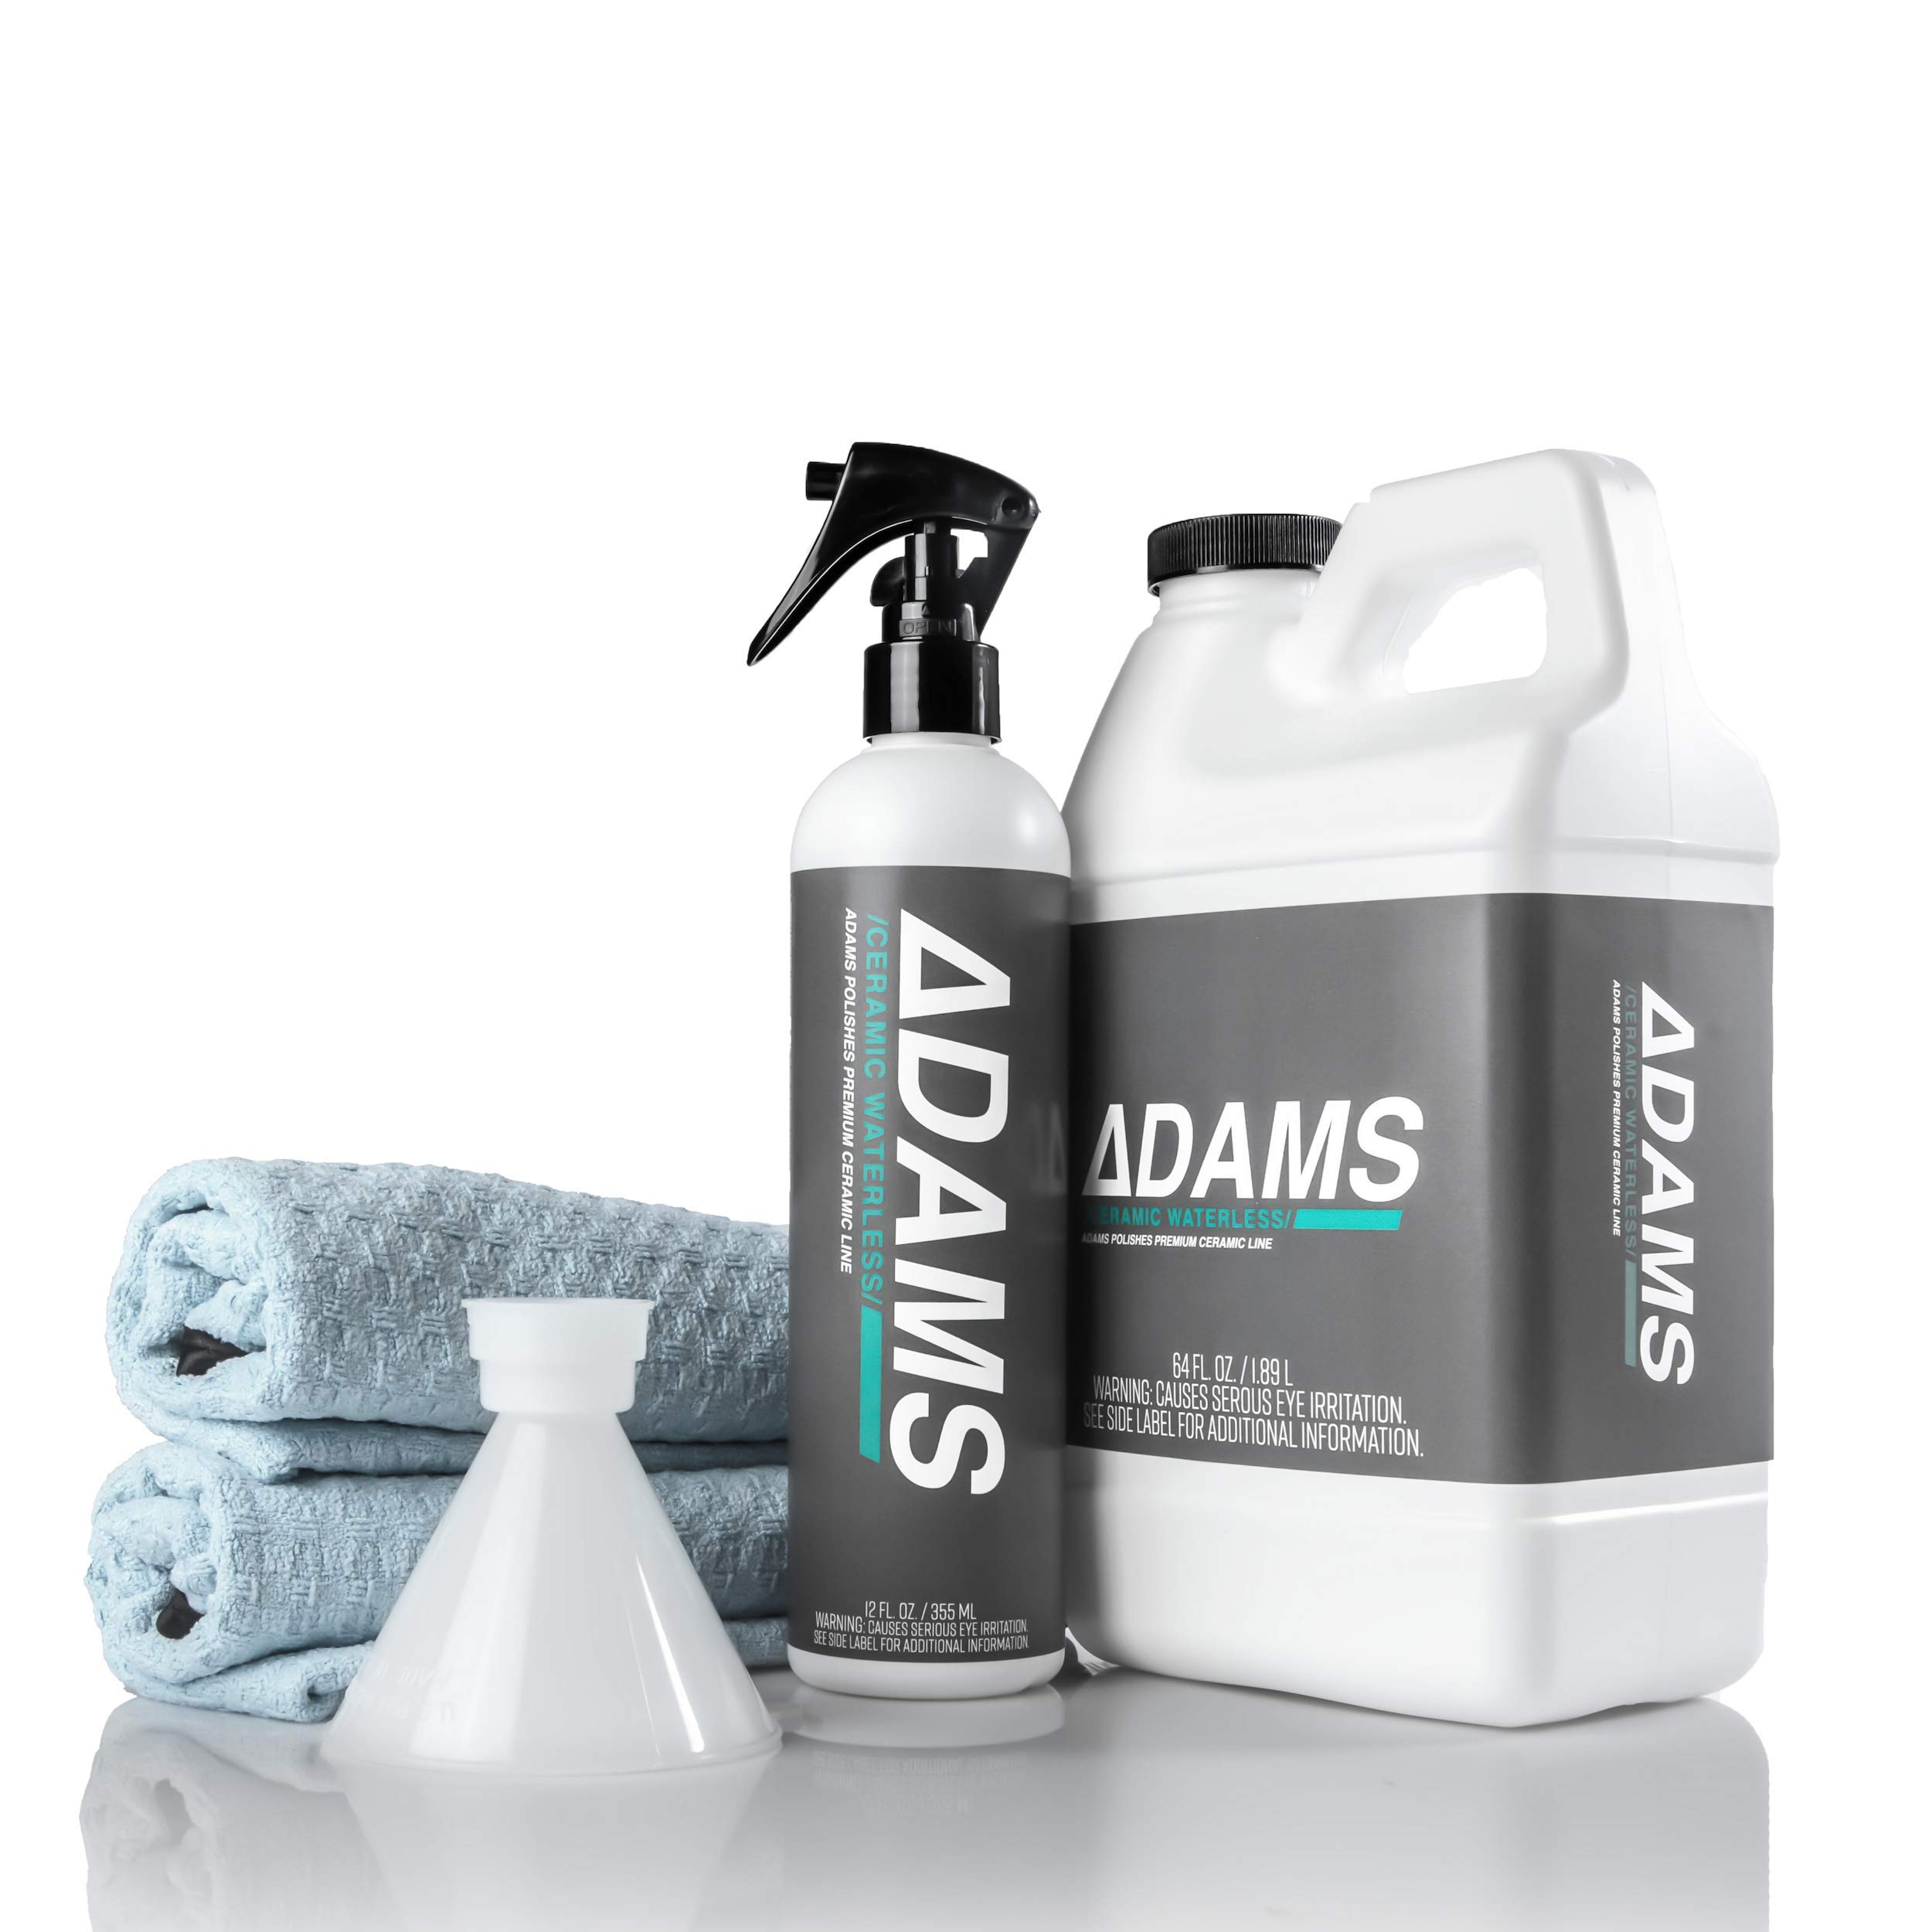 Adam's Ceramic Waterless Wash - Clean & Boost The Ceramic Protection of Boat, RV, Truck & Motorcycle - Hydrophobic Top Coat Cleaner & Sealant (Refill Complete Kit)